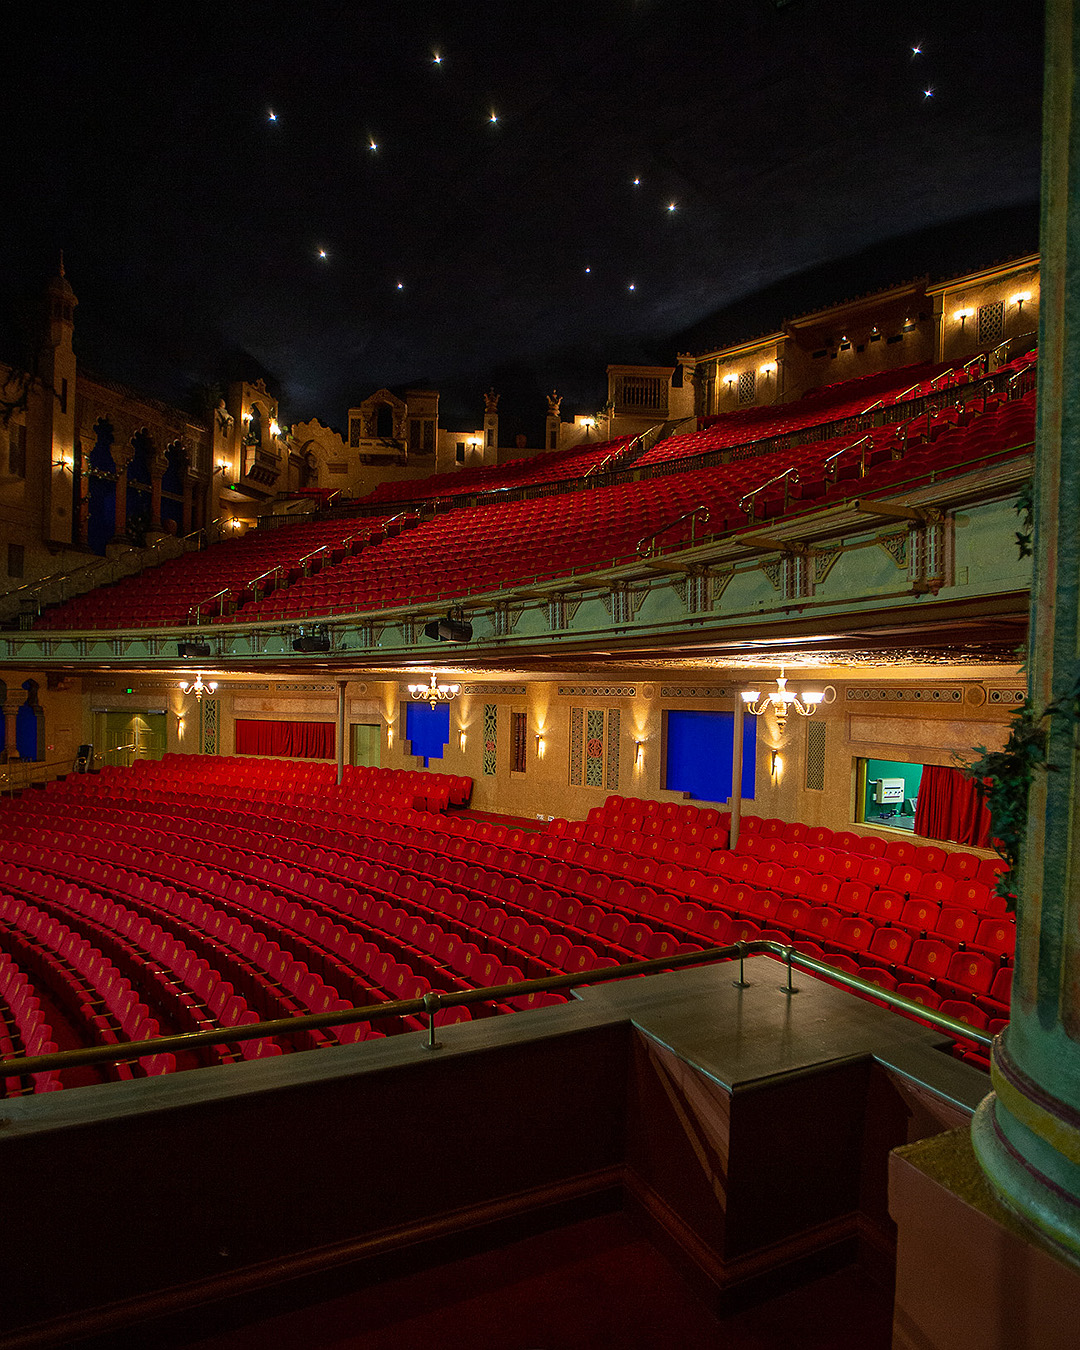 The interior of The Civic Theatre showing a canopy of stars overhead.